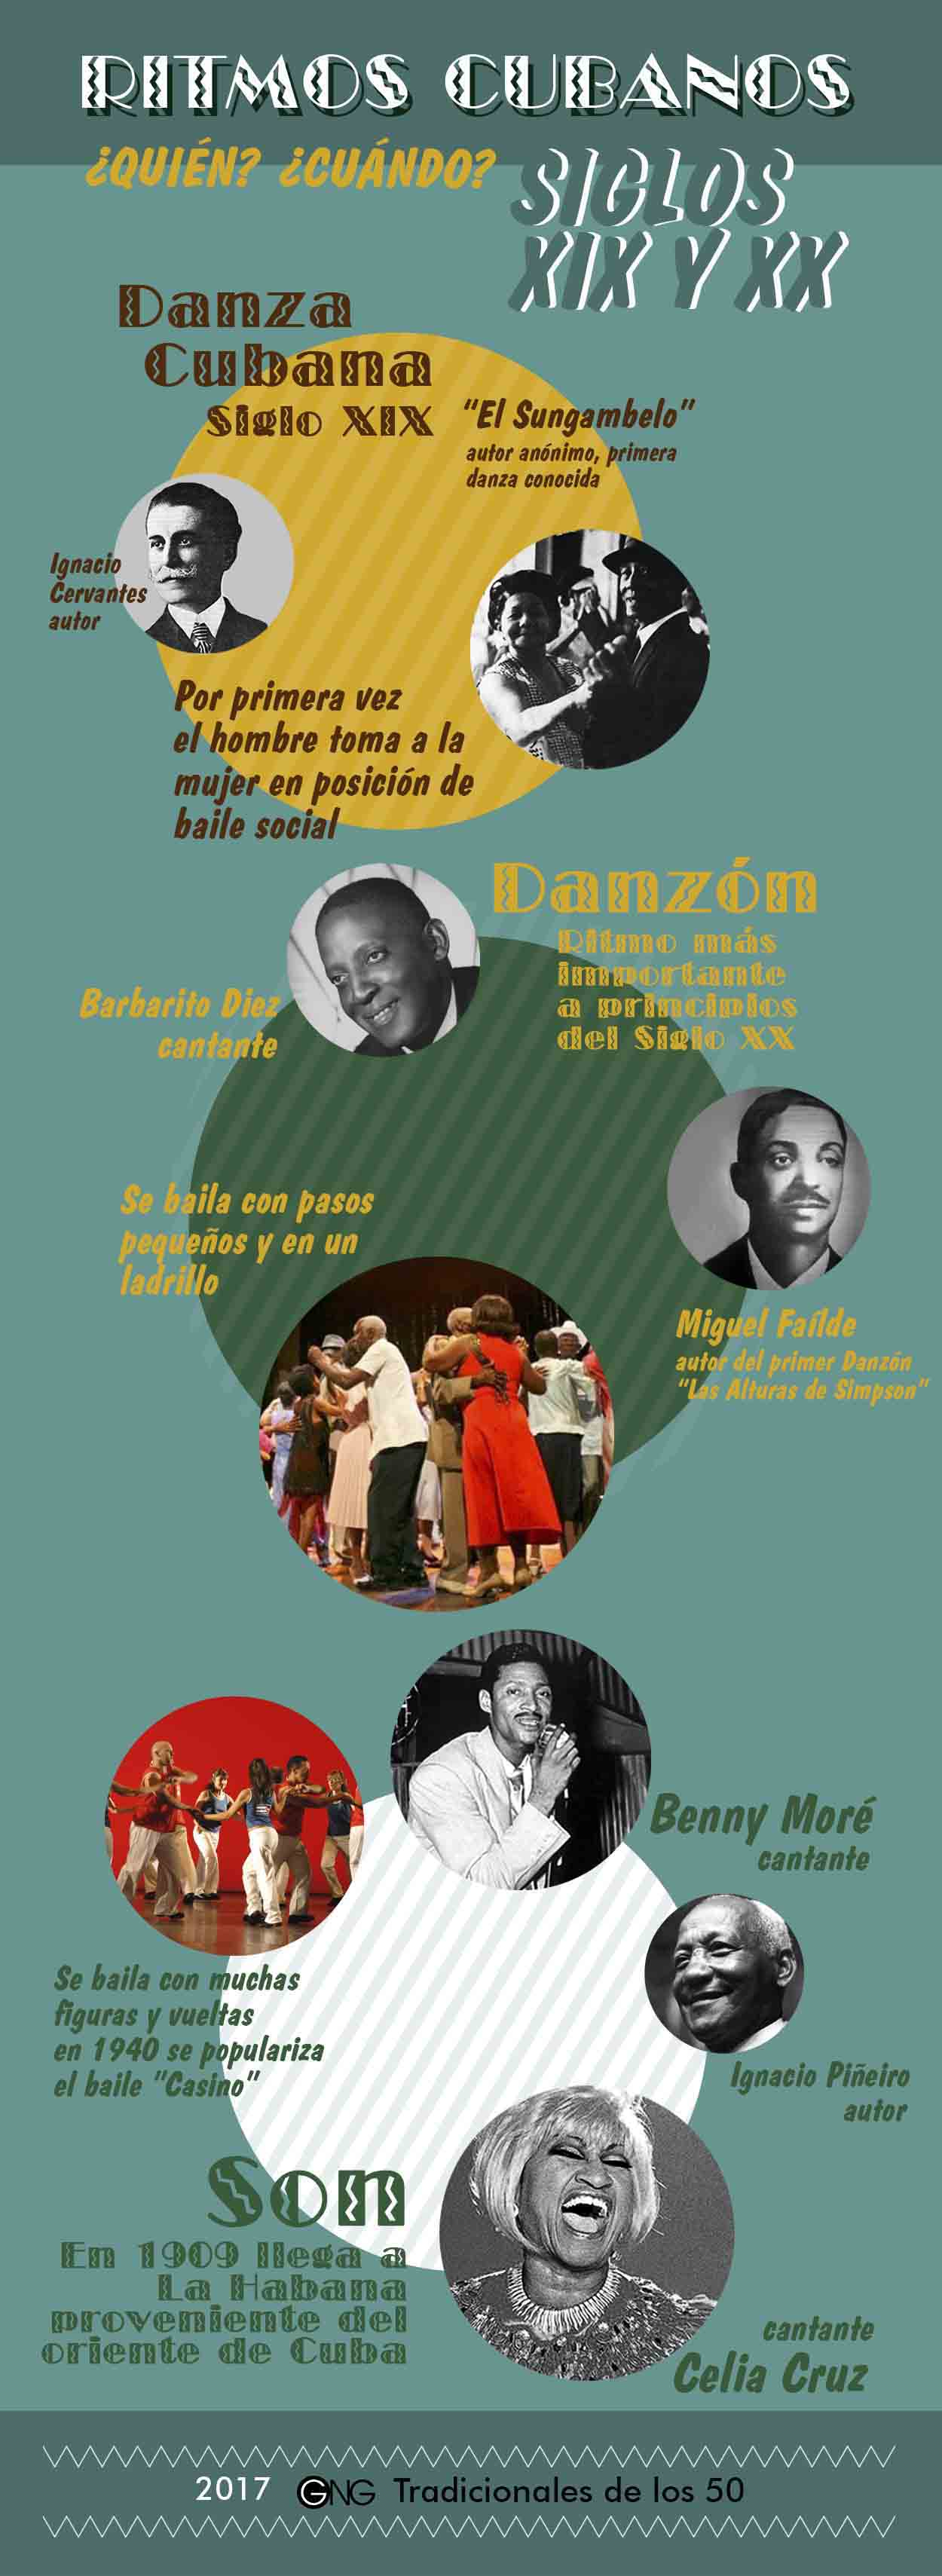 Infography about the arise of Danzon, Cha Cha, dances and all are Cuban from the XIX and XX centuries.